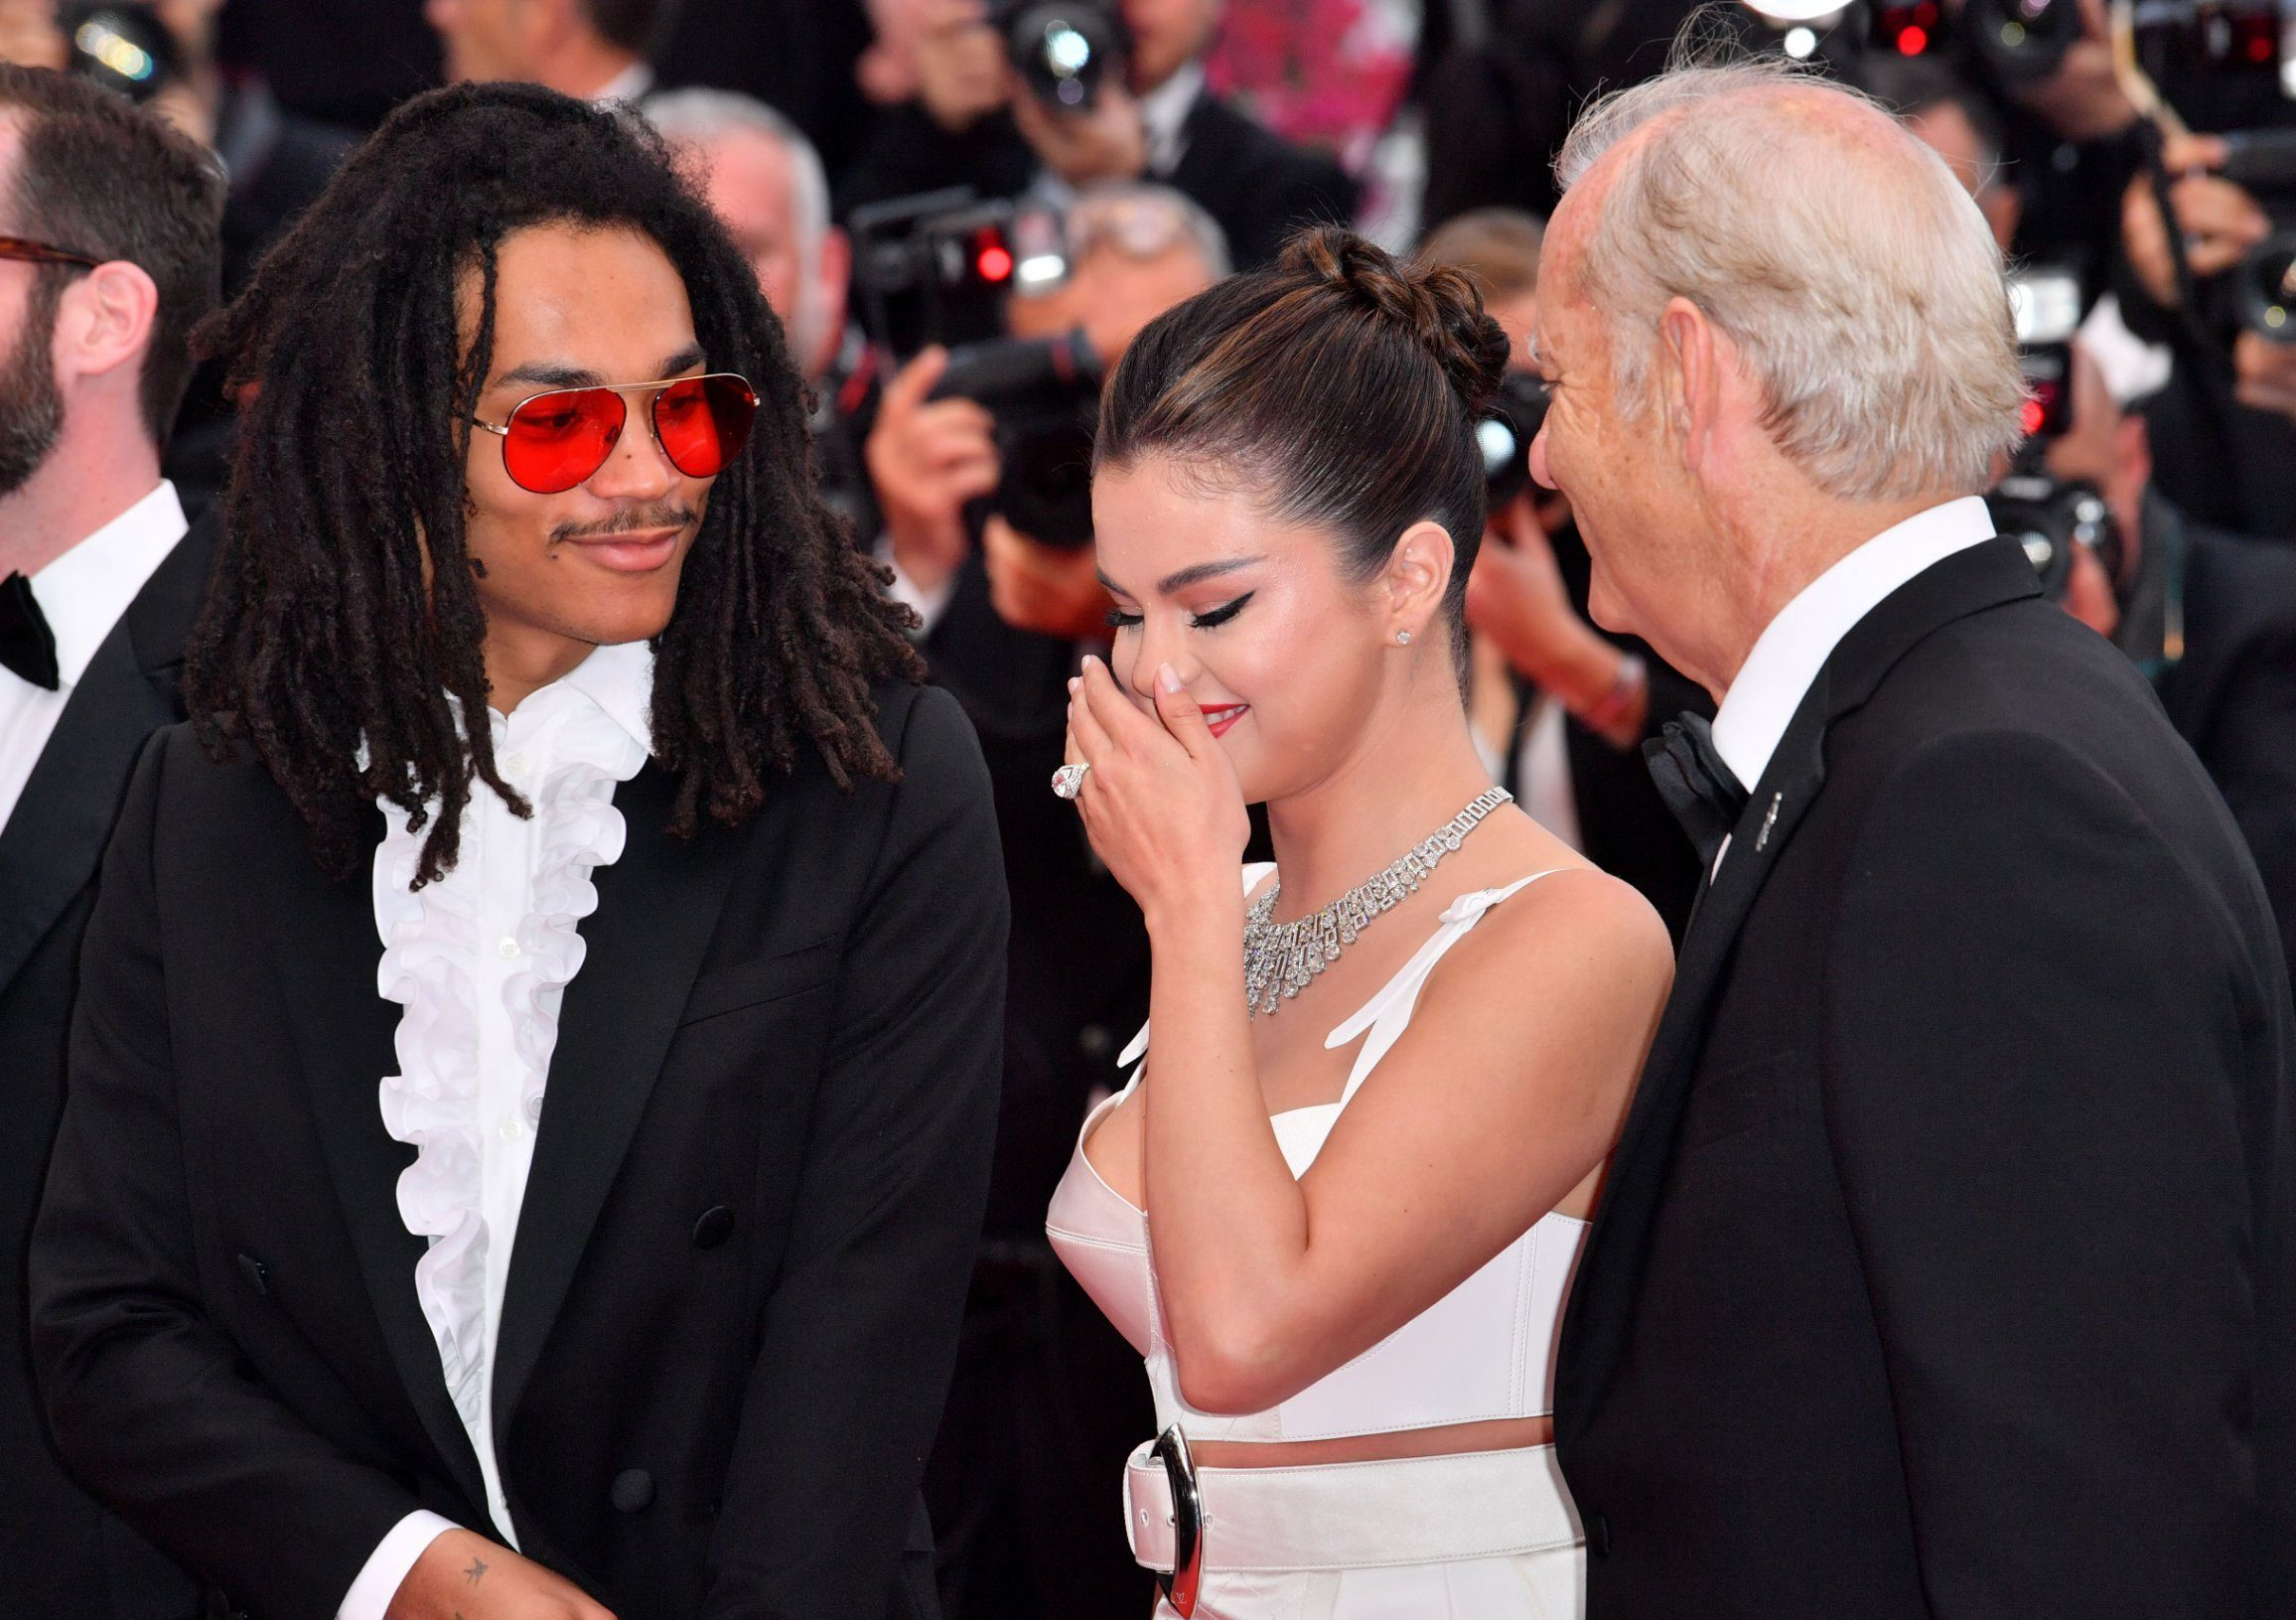 Luka Sabbat, Selena Gomez and Bill Murray during The Dead Don't Die premiere in Cannes